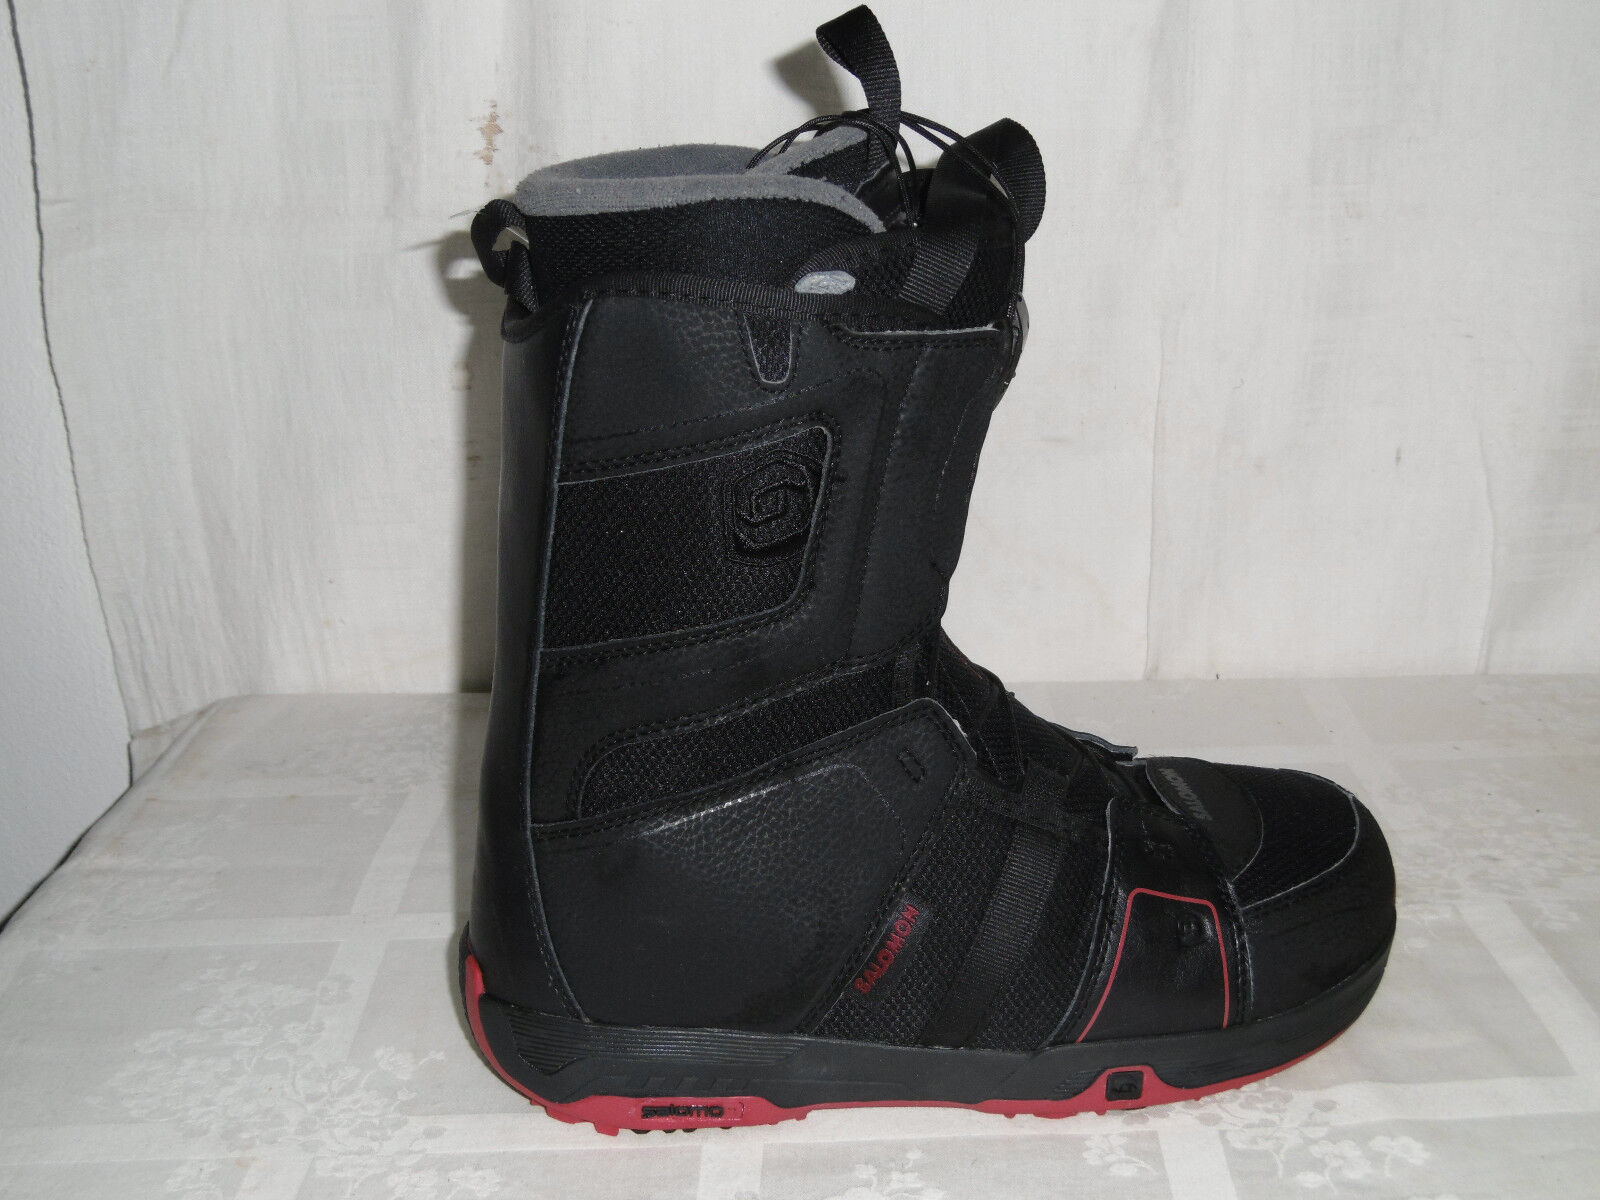 SALOMON     ECHELON   TOP SNOWBOARD Stiefel GR.  37 115837